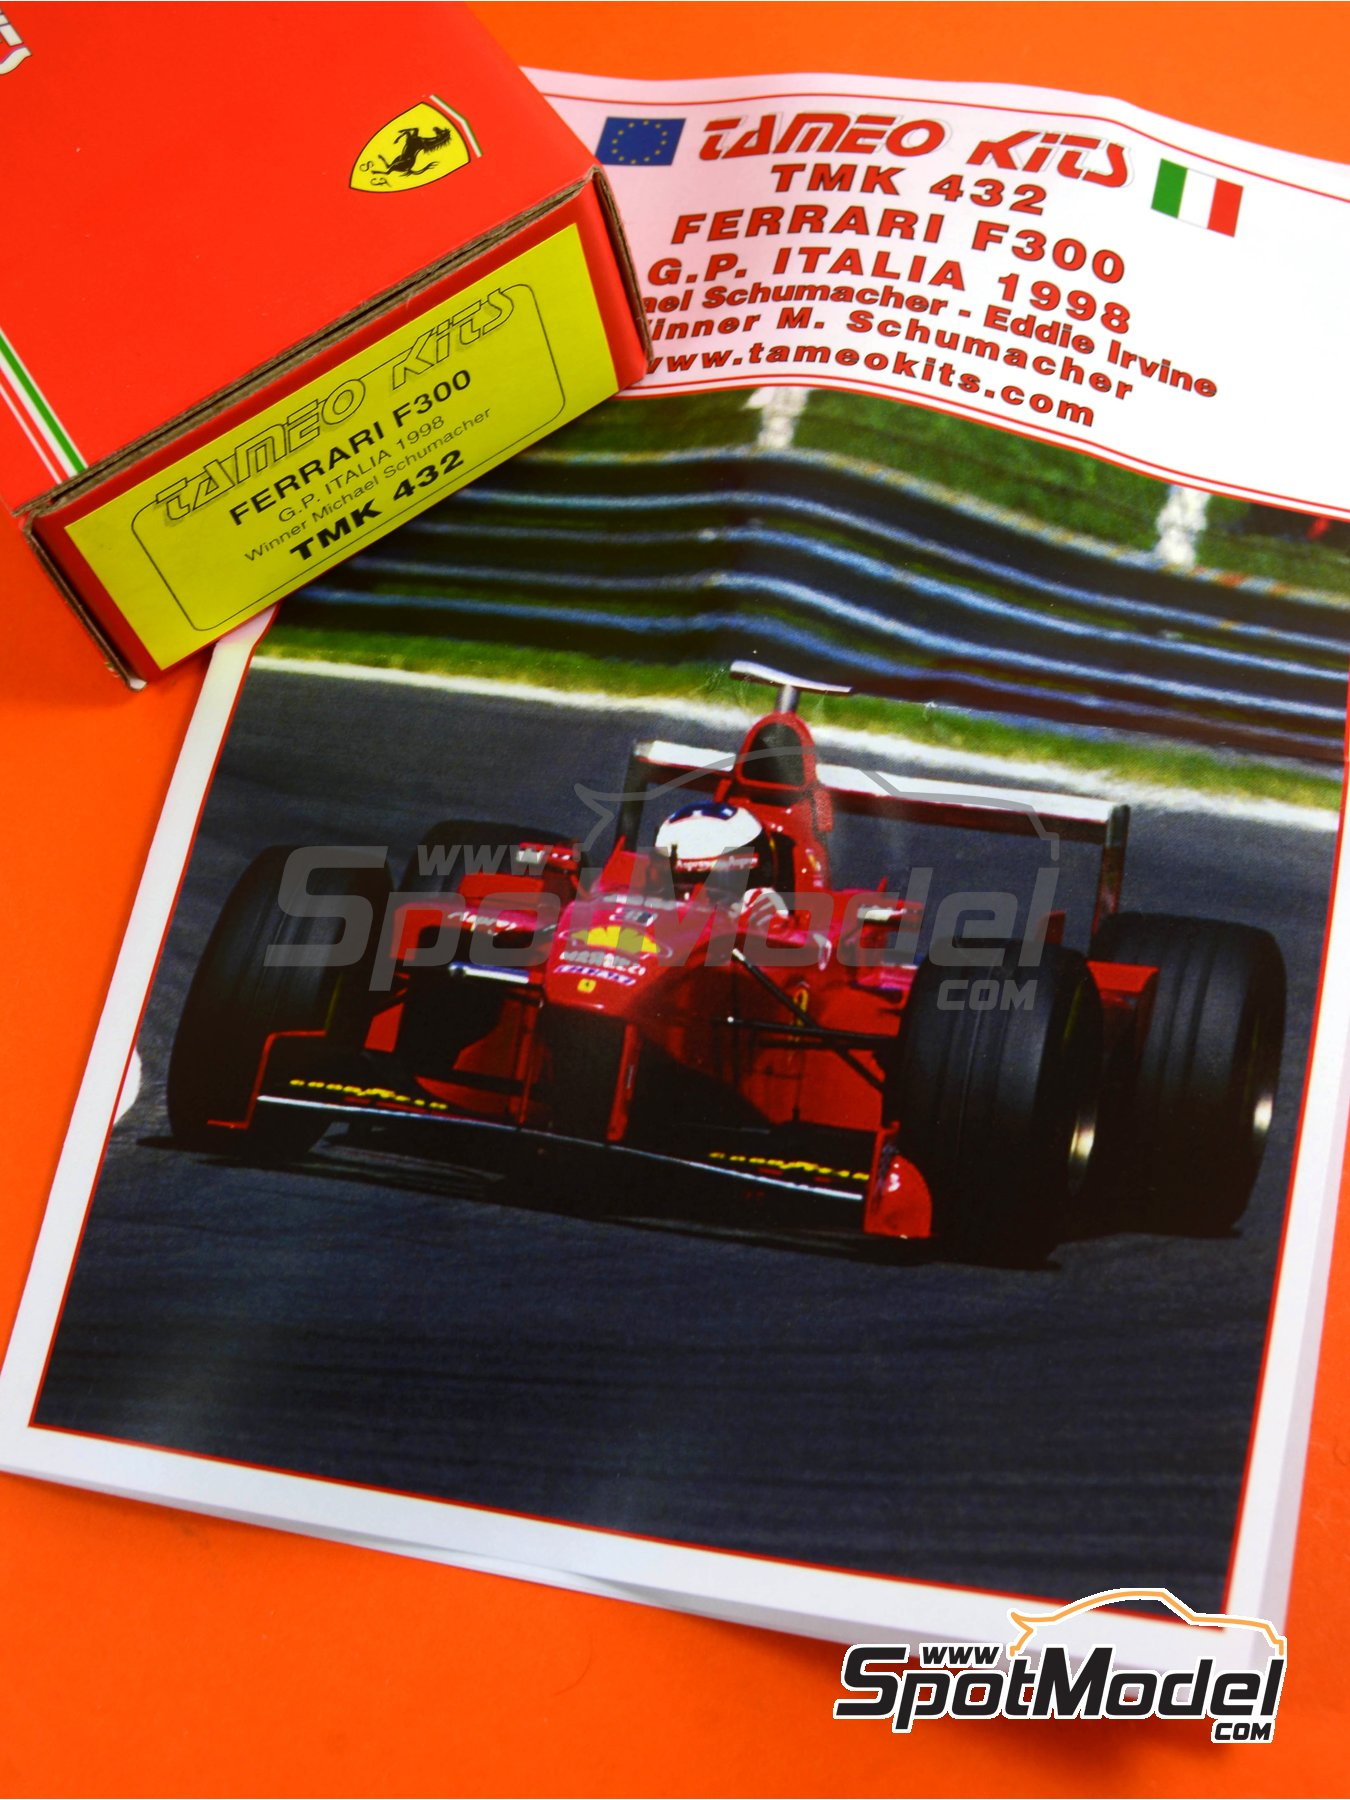 Ferrari F300 Marlboro - Italian Formula 1 Grand Prix 1998 | Model car kit in 1/43 scale manufactured by Tameo Kits (ref. TMK432) image